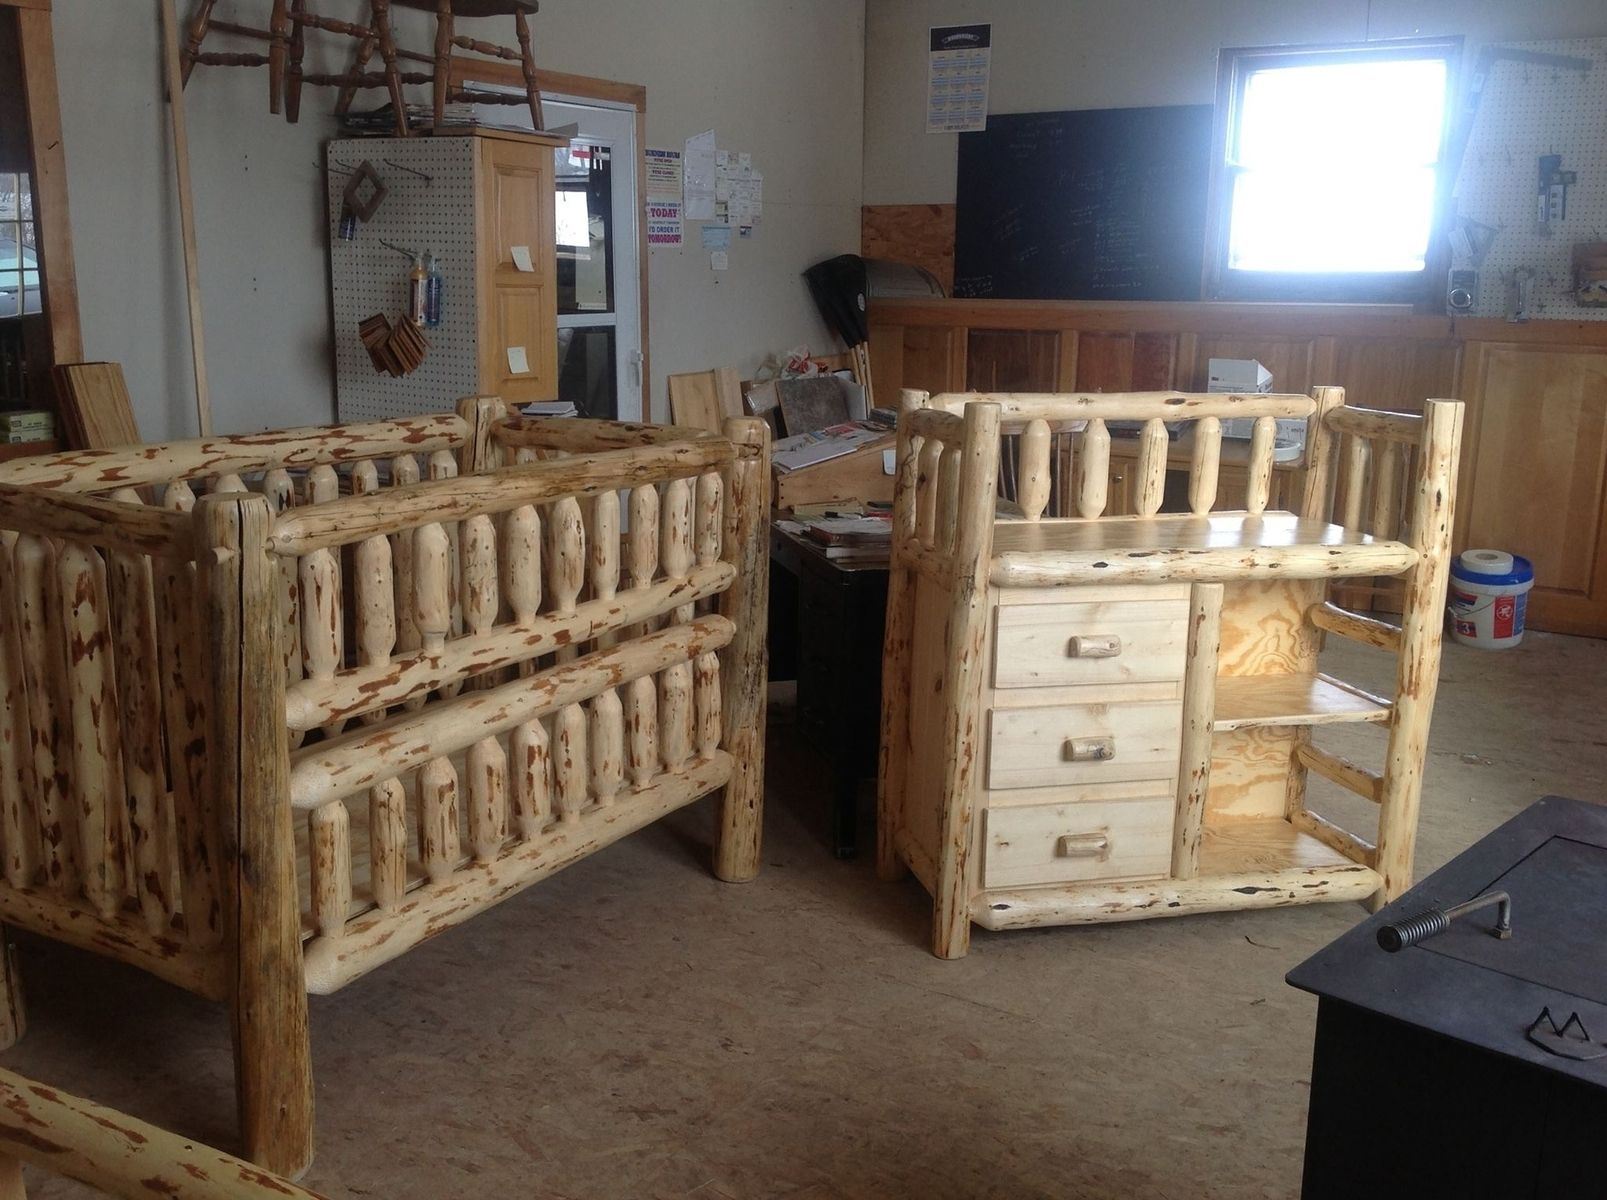 Baby cribs rustic - Baby Cribs Rustic 44